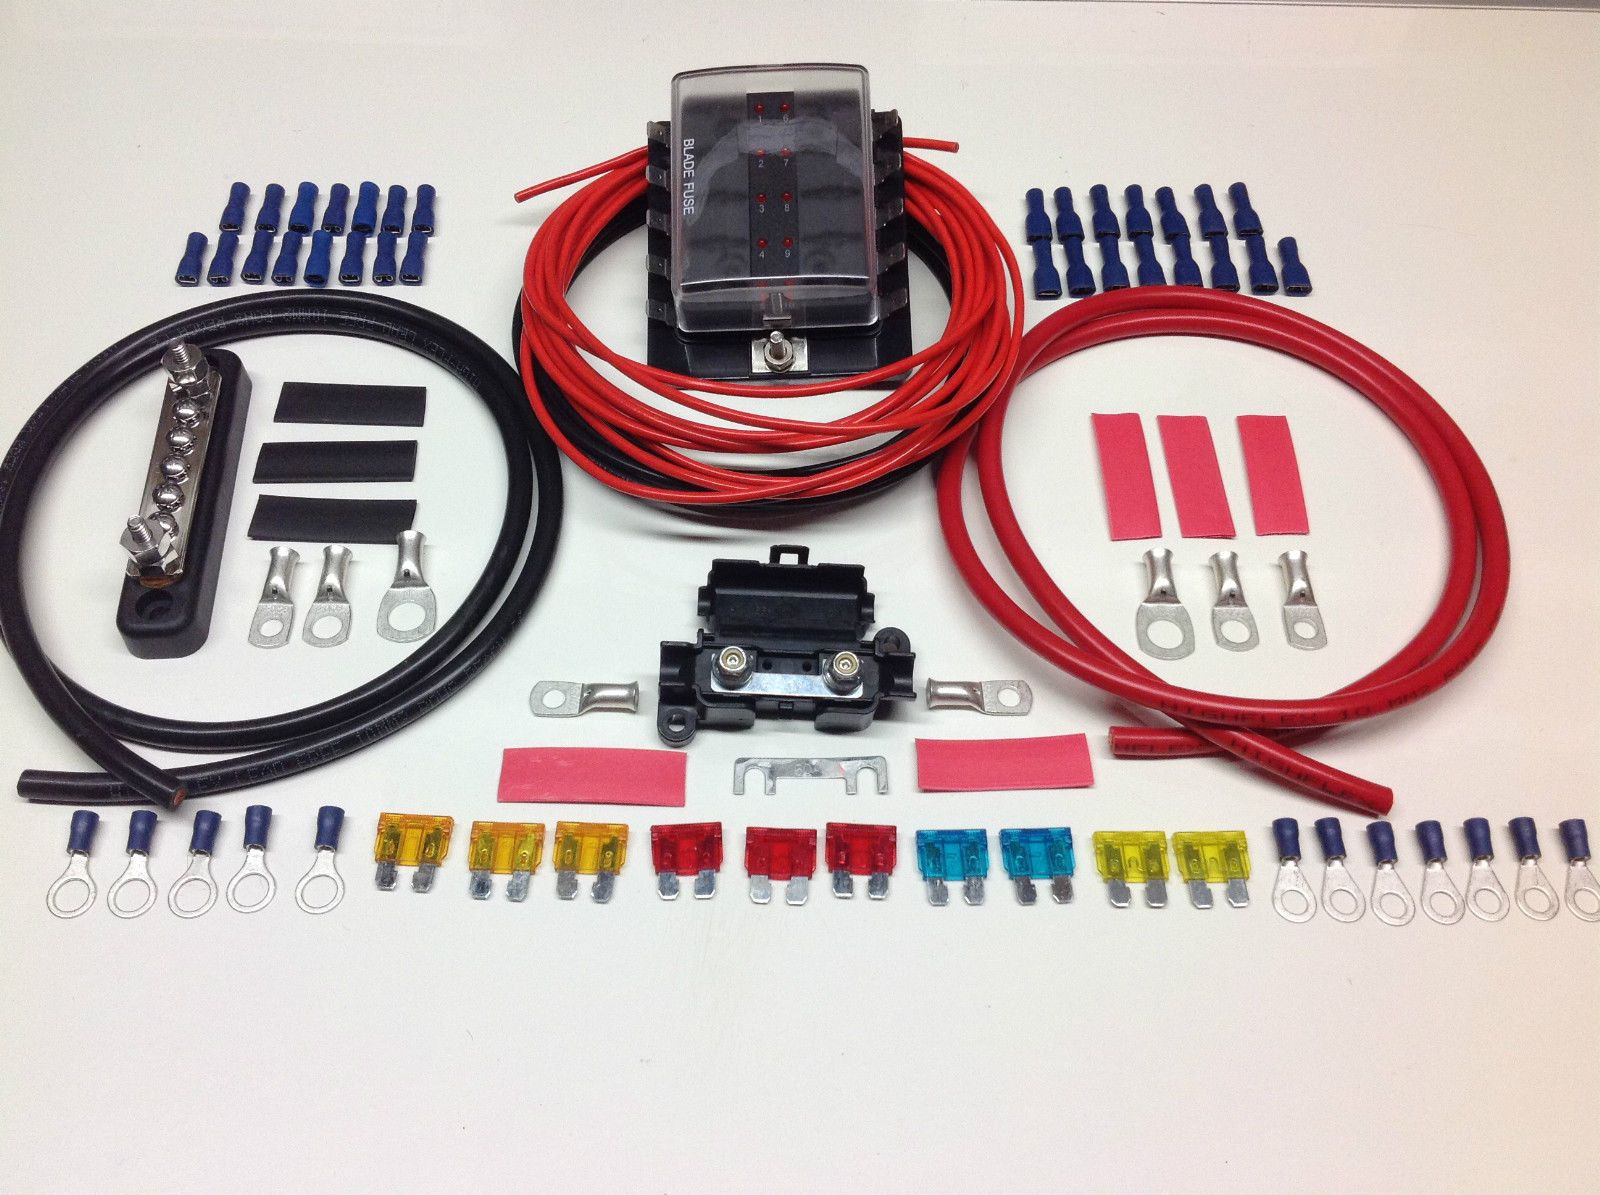 10 way fuse box distribution kit with negative bus bar cable terminals &  fuses  simply 12 volt